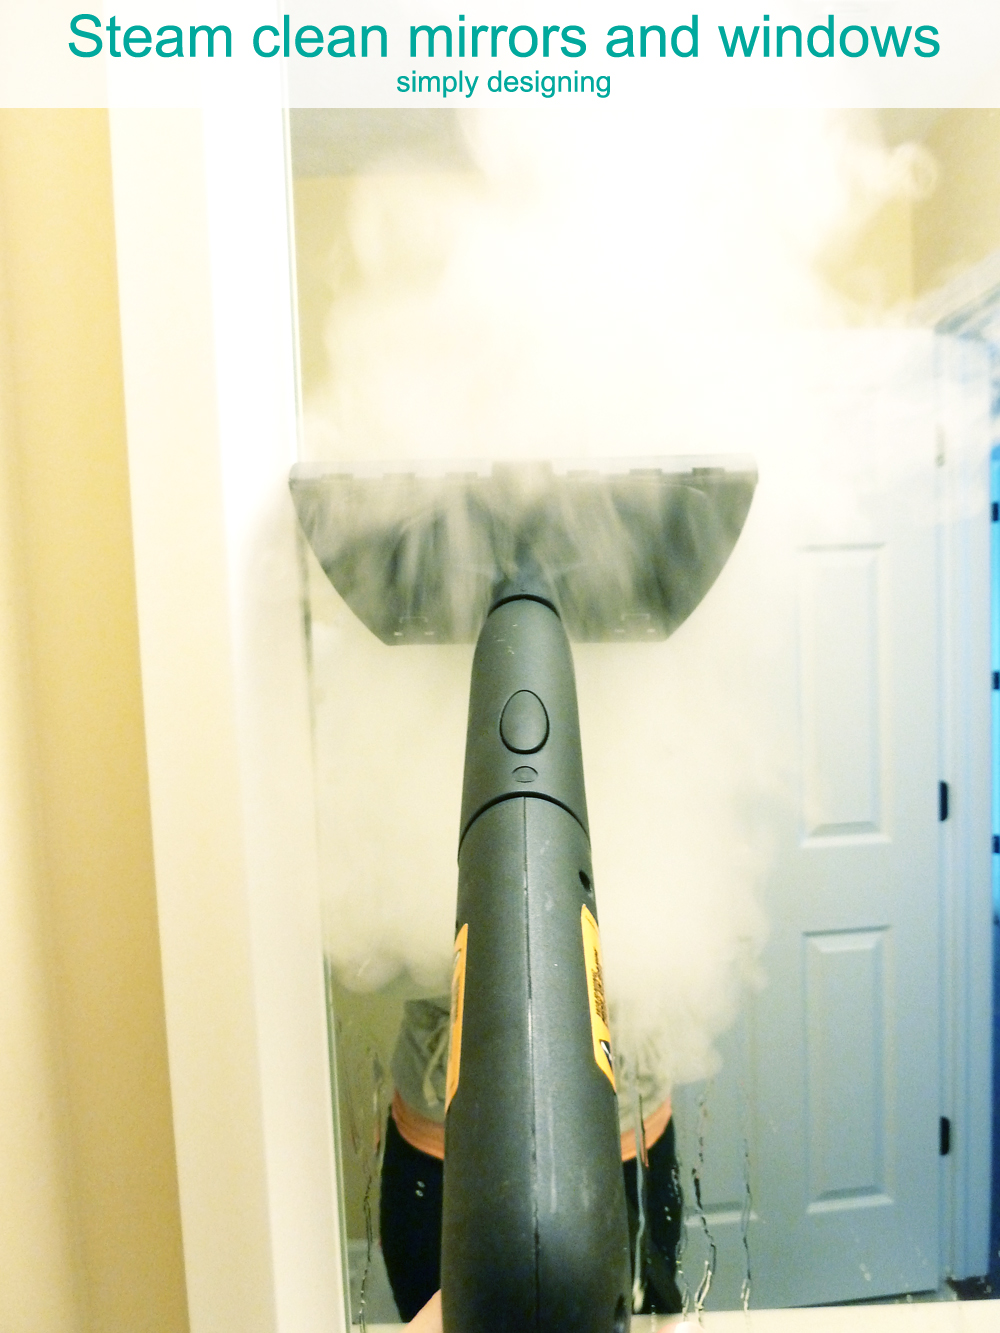 Winter cleaning with the SteamMachine